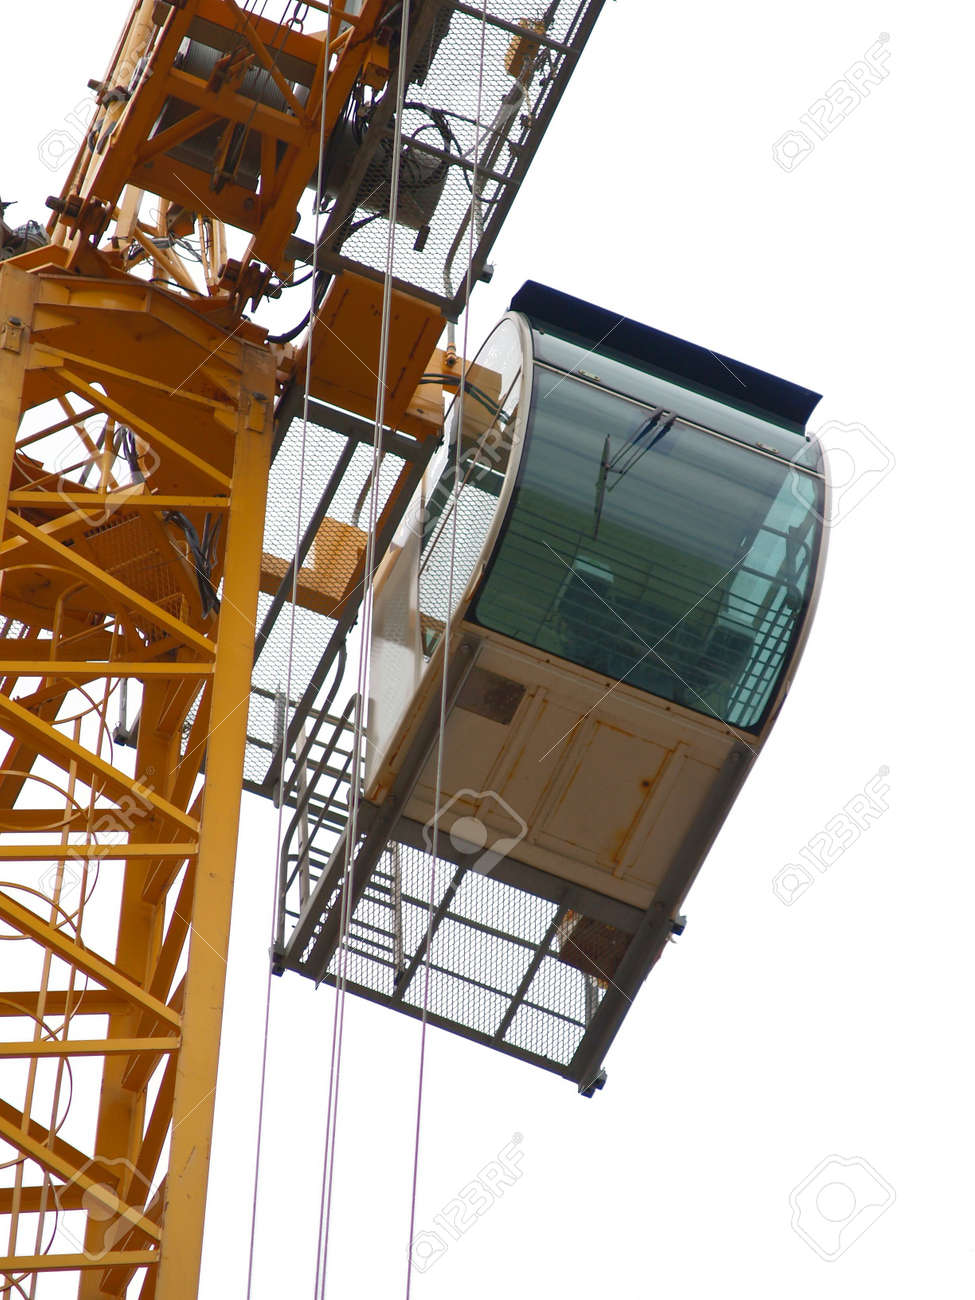 Crane detail: cabin. Brussels European quarter. Almost isolated on white. - 235012